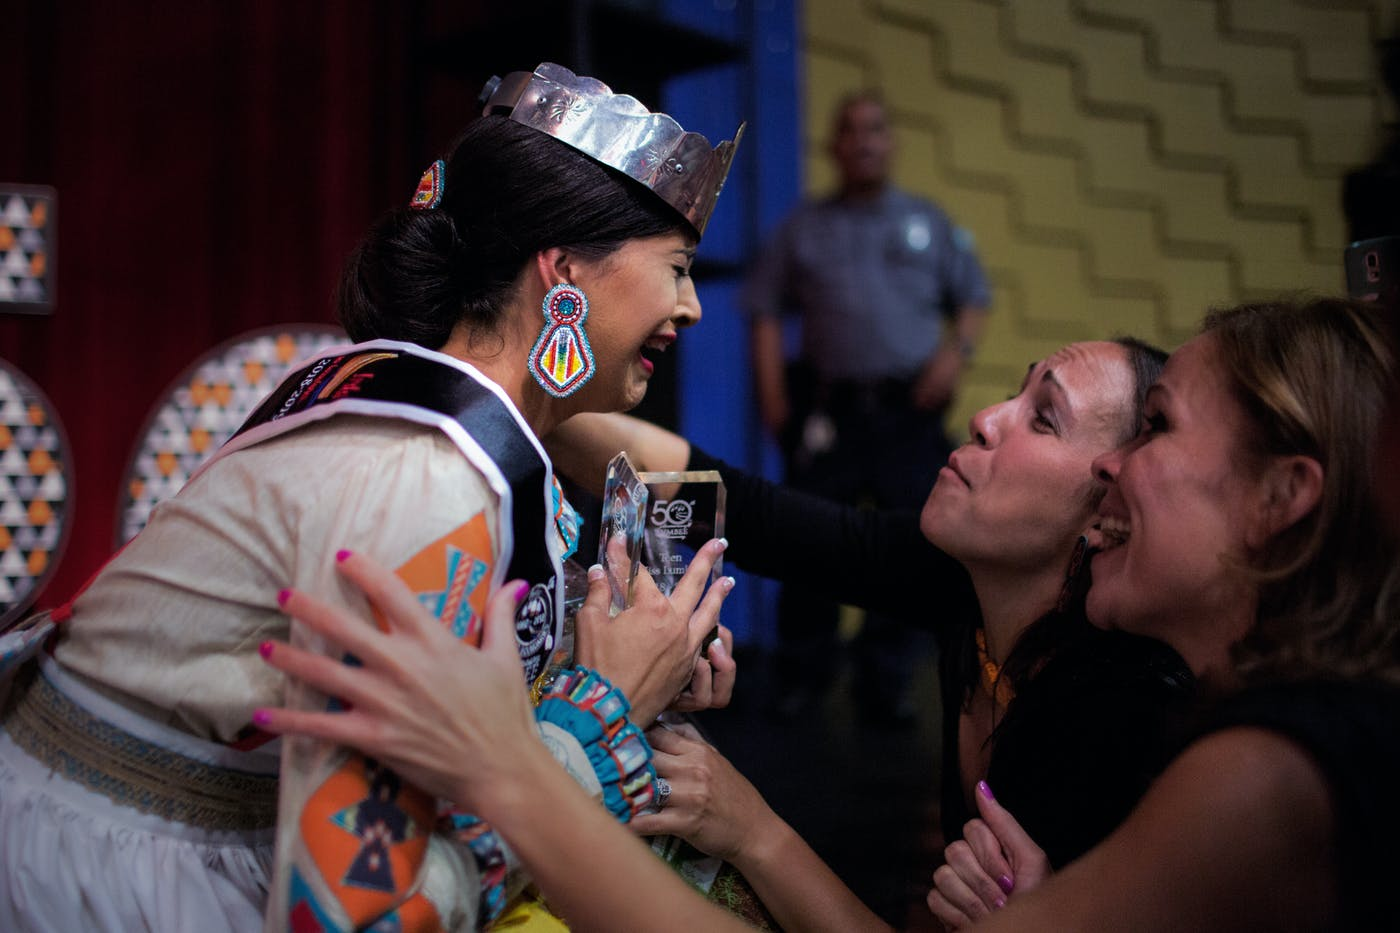 Teen Miss Lumbee winner Jacobs kneels at the edge of the stage after she's pronounced the winner.